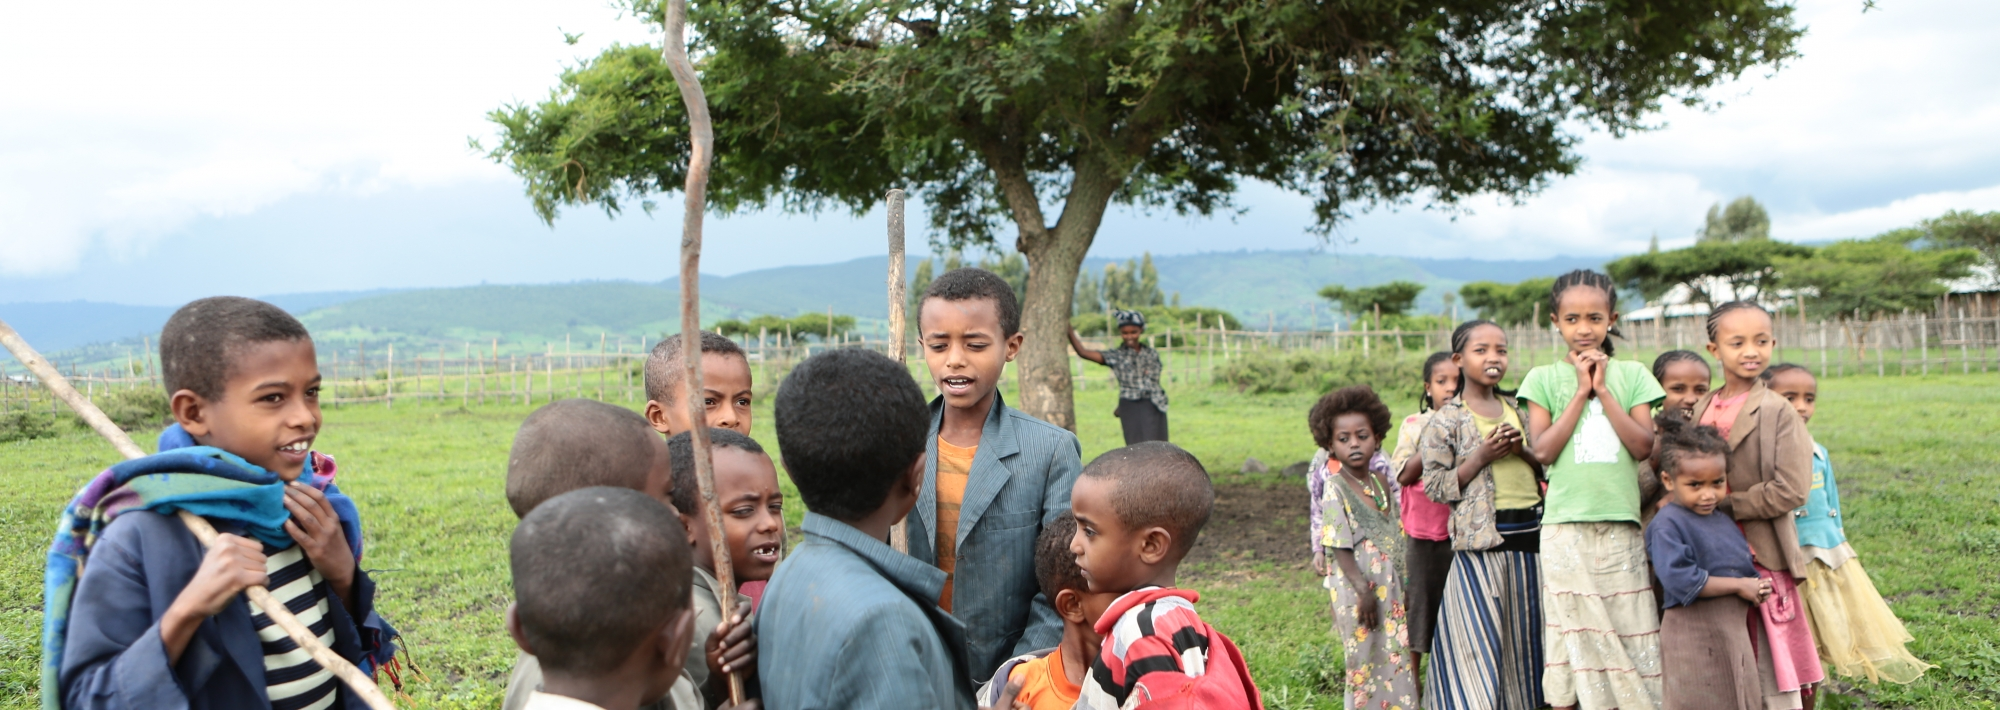 Ethiopia children playing games in groups